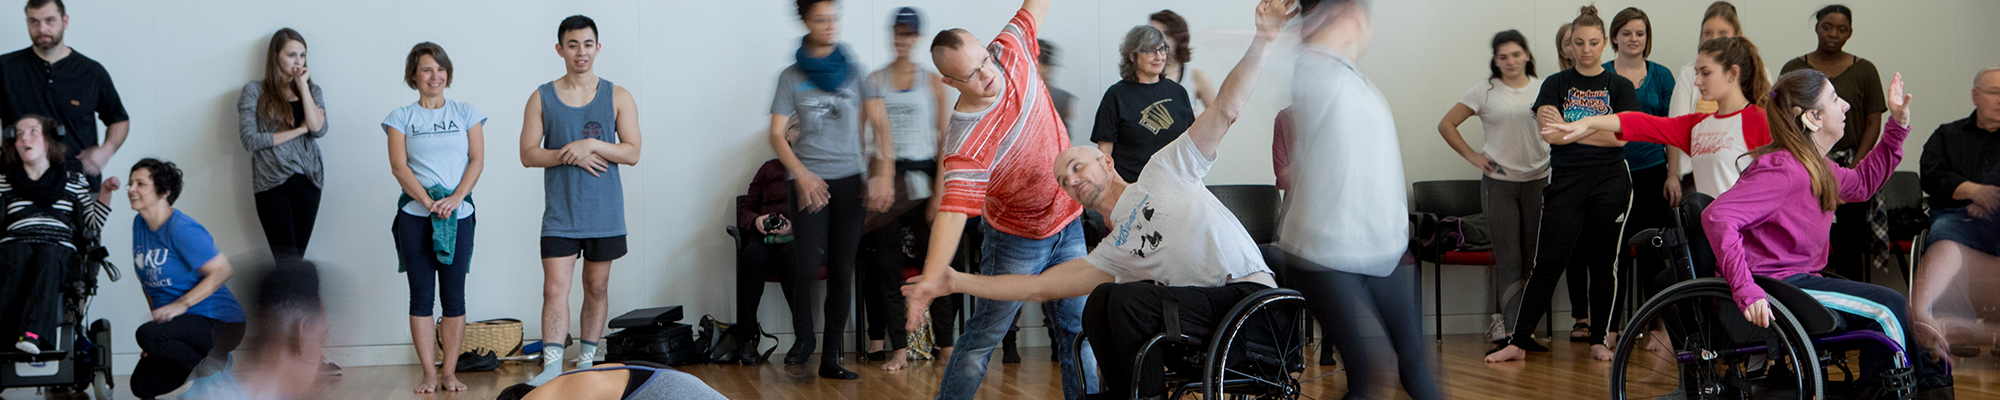 Wheelchair dancers.